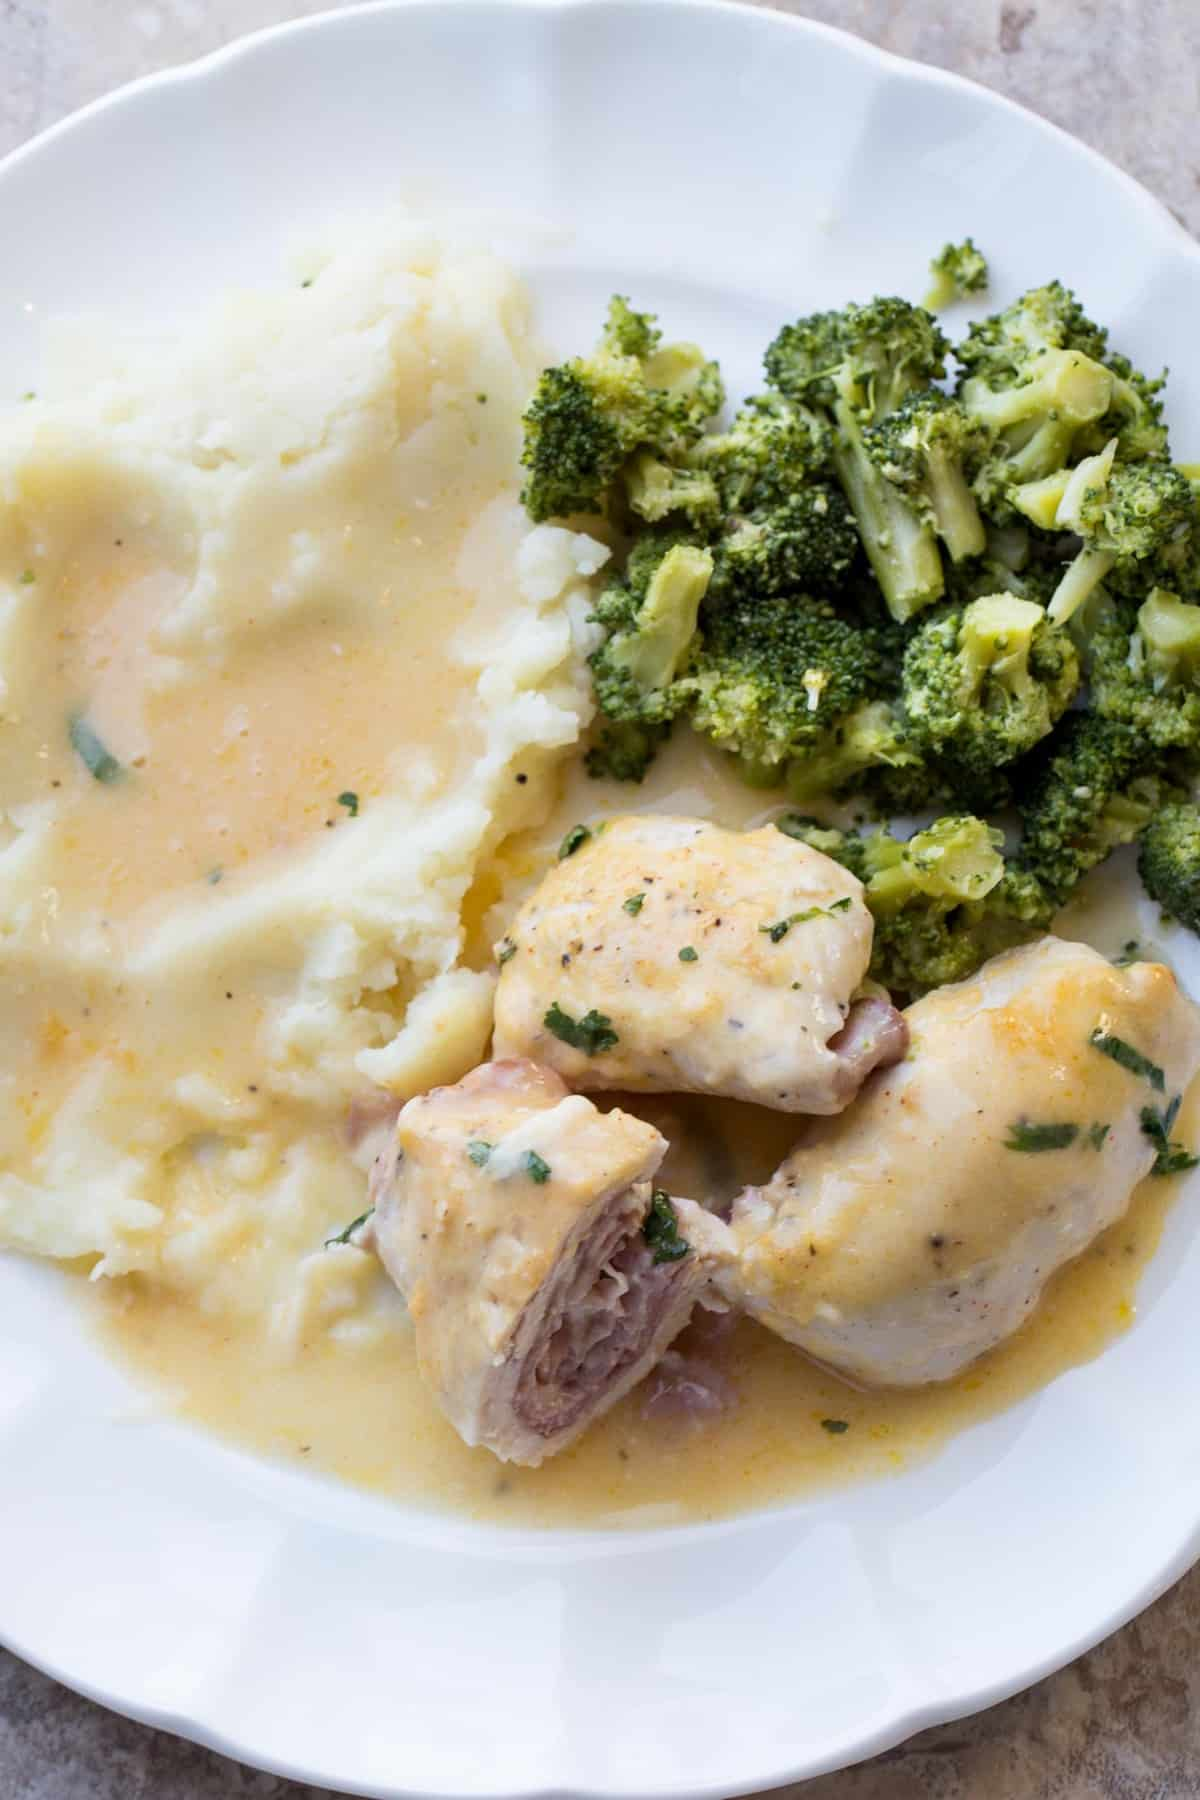 Chicken cordon bleu with mashed potatoes and a side of broccoli.